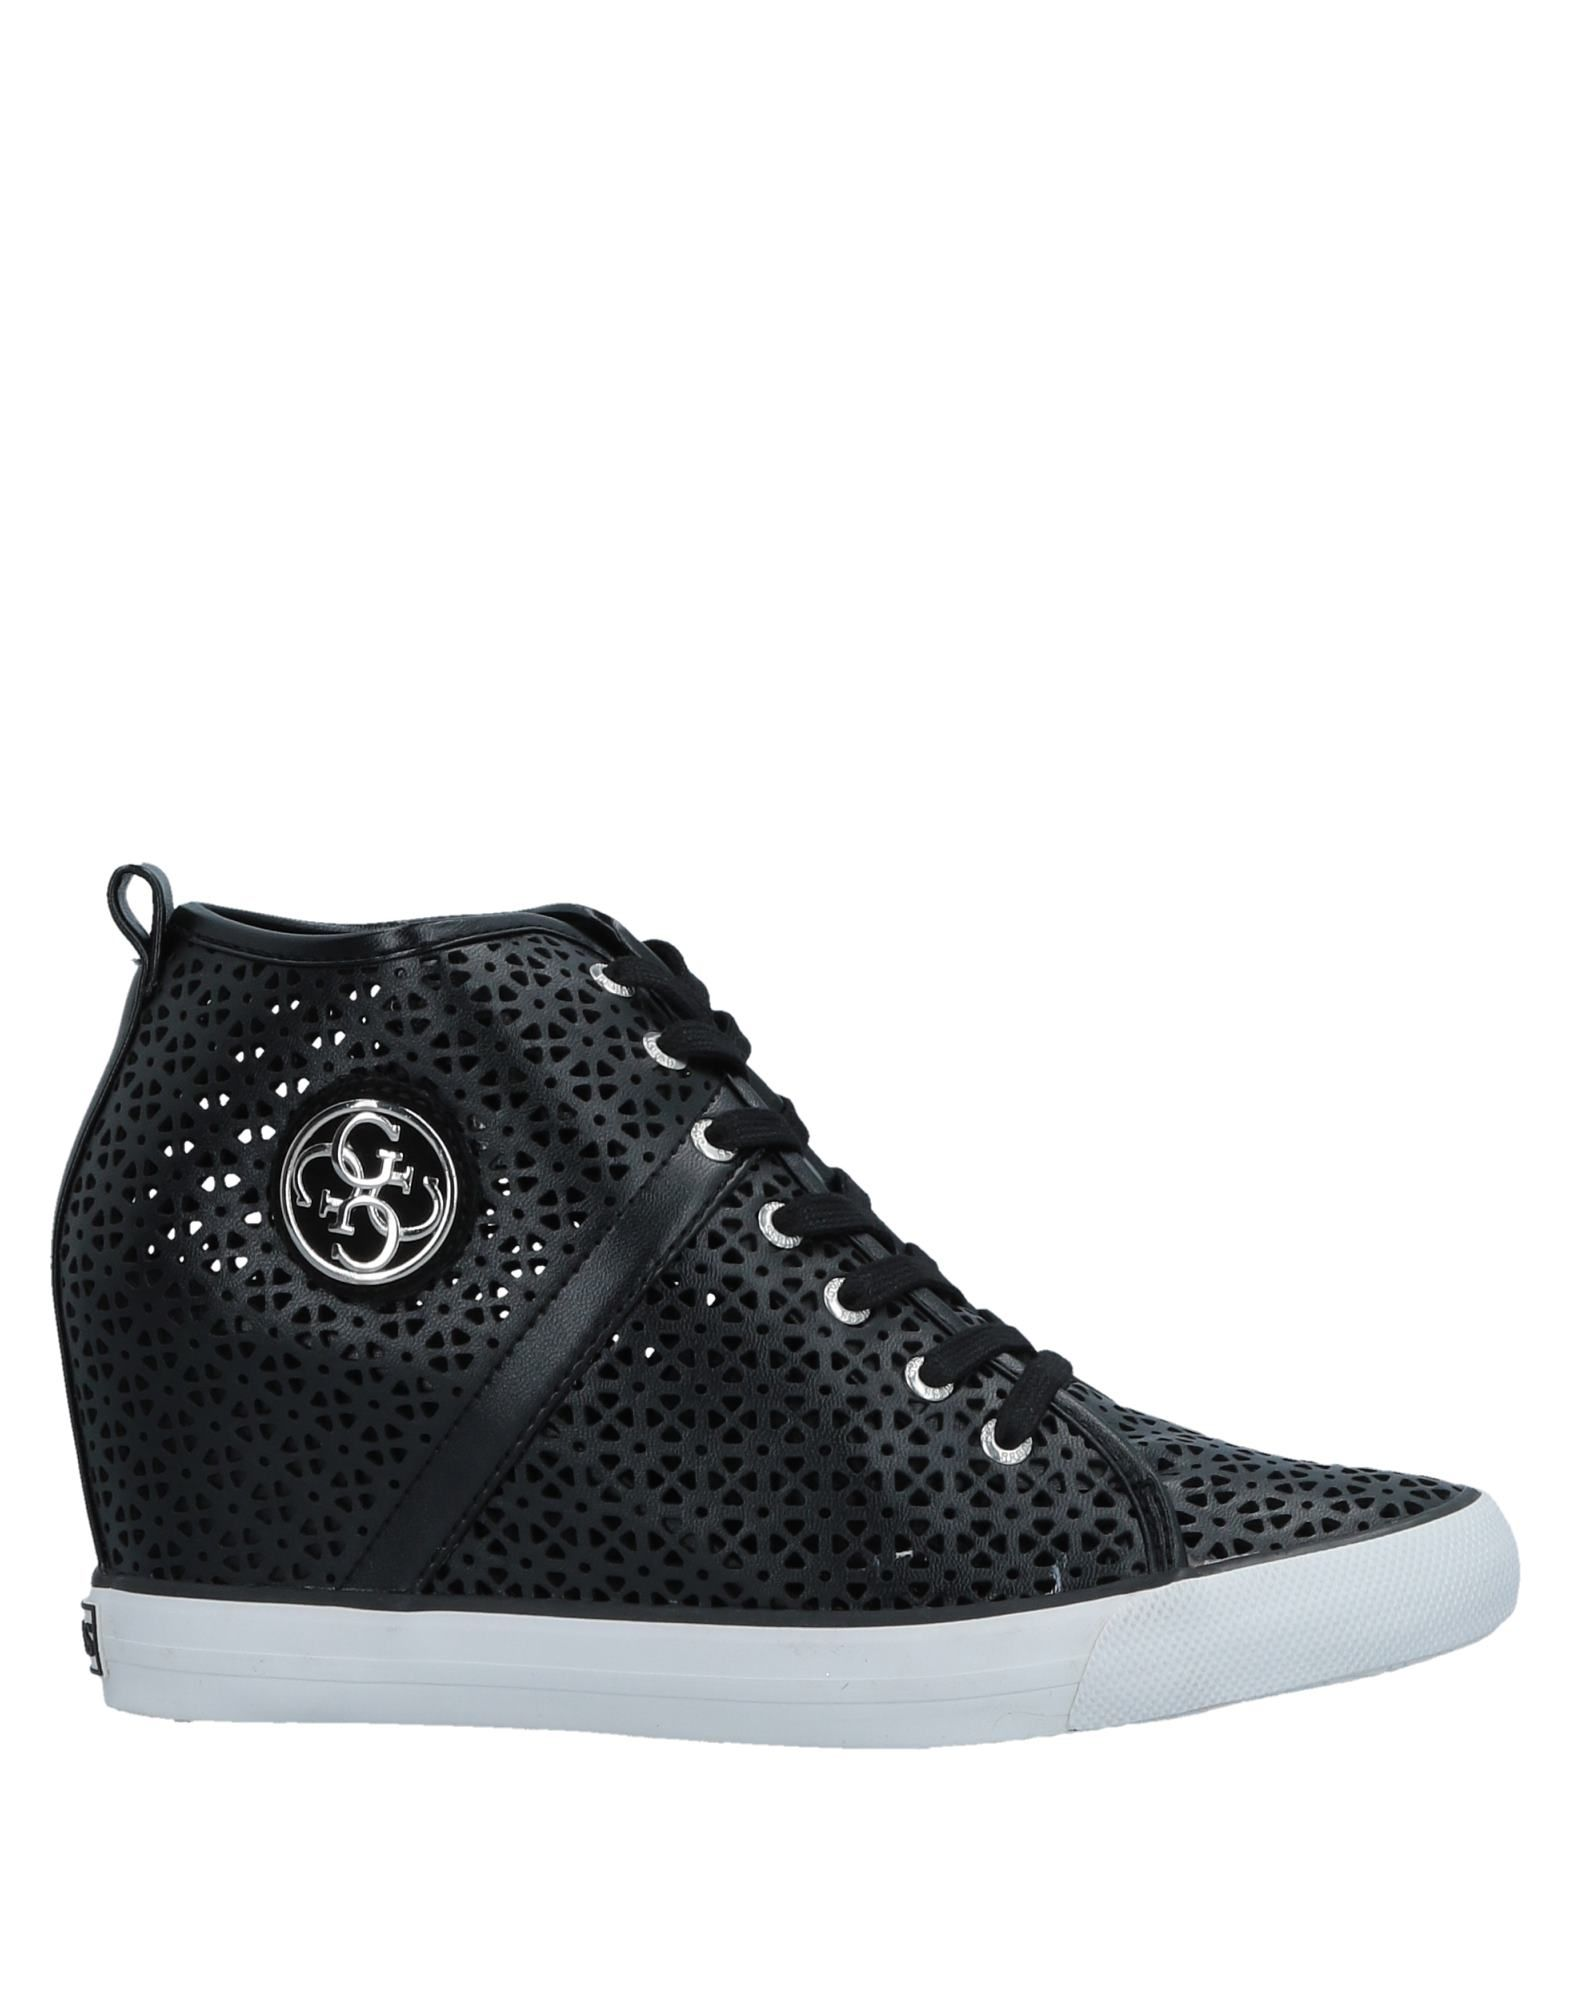 Moda Sneakers Guess Donna - 11493324LM